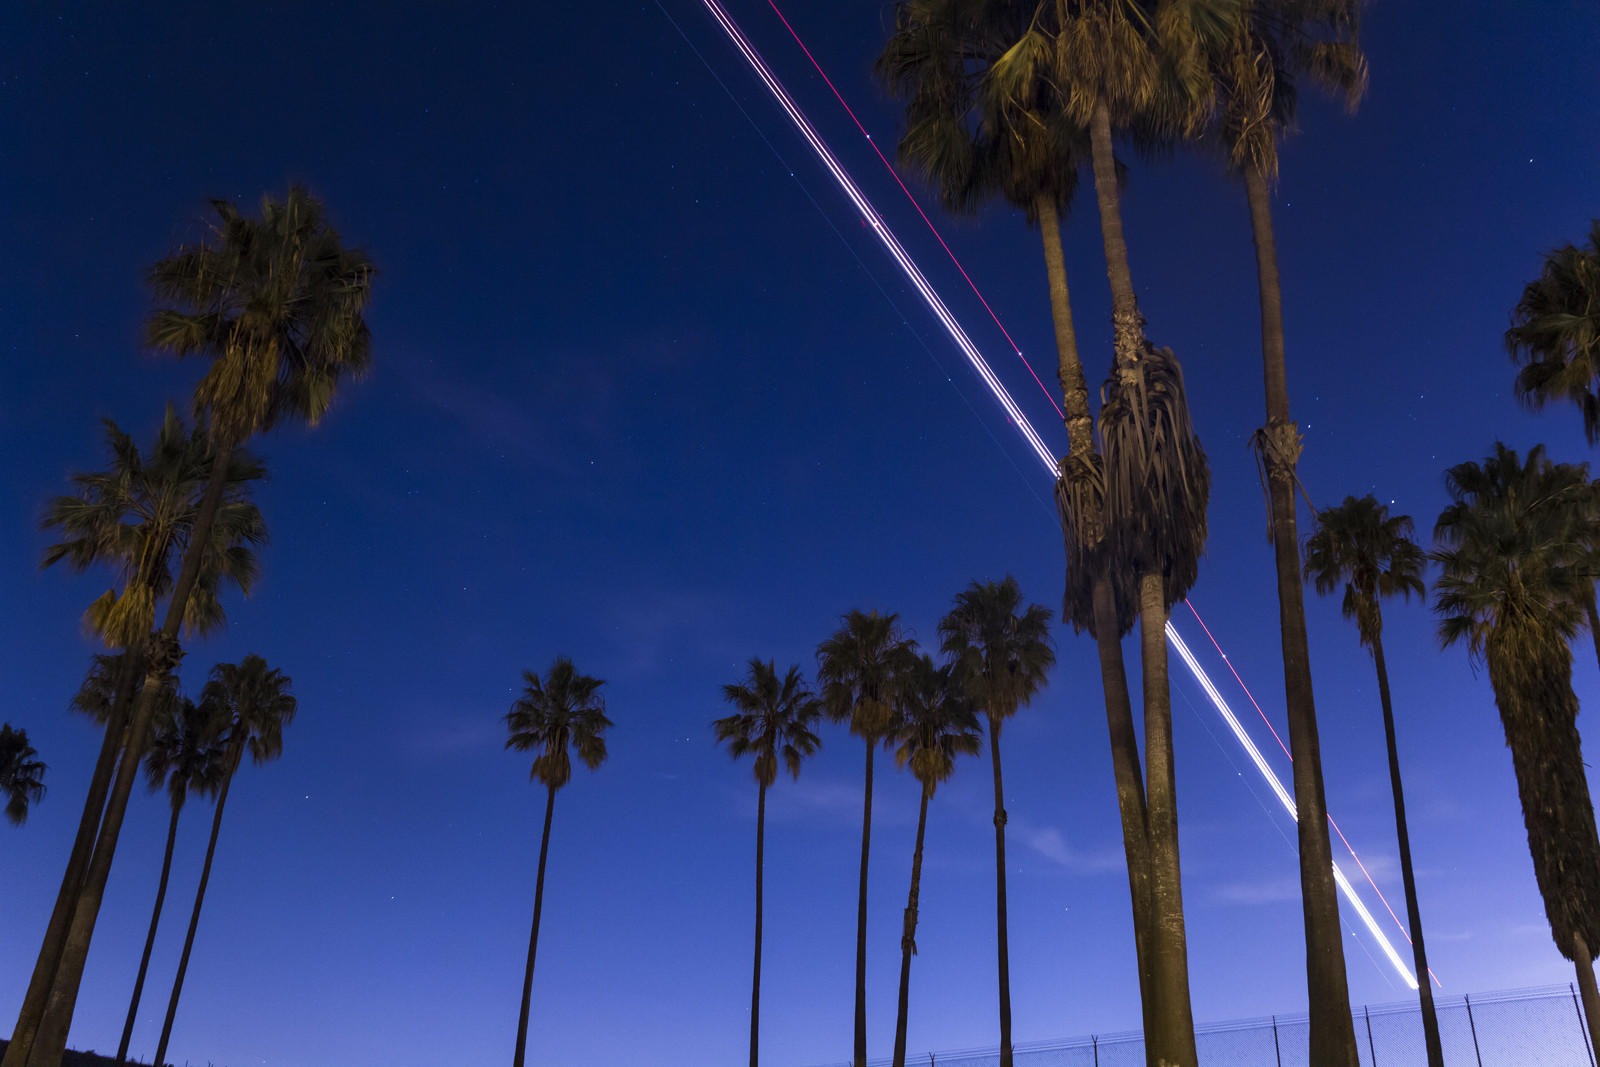 The light trail from a plane near LAX can be seen.